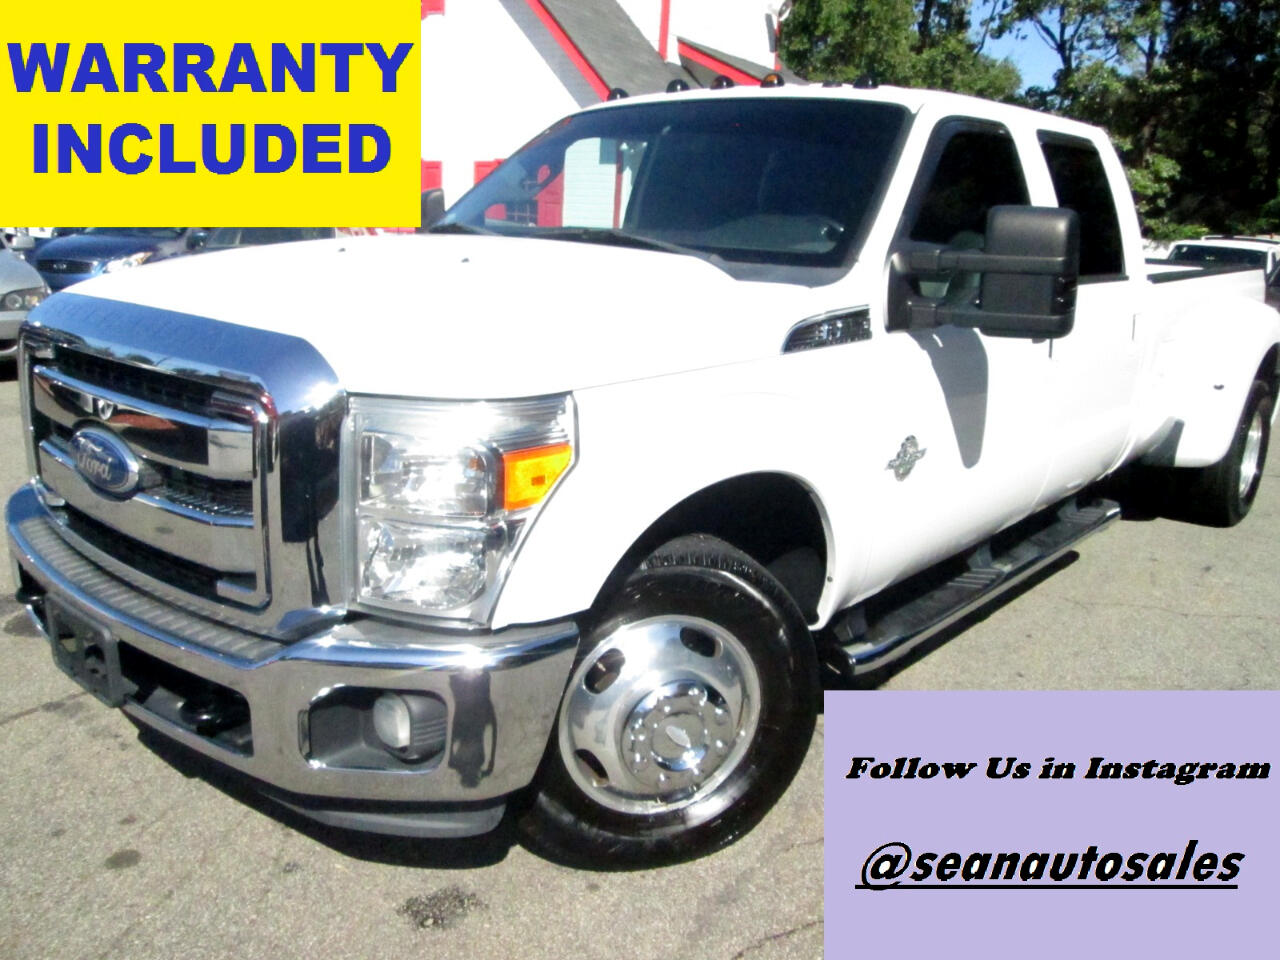 Ford F-350 SD Lariat Crew Cab Long Bed DRW 2WD 2011